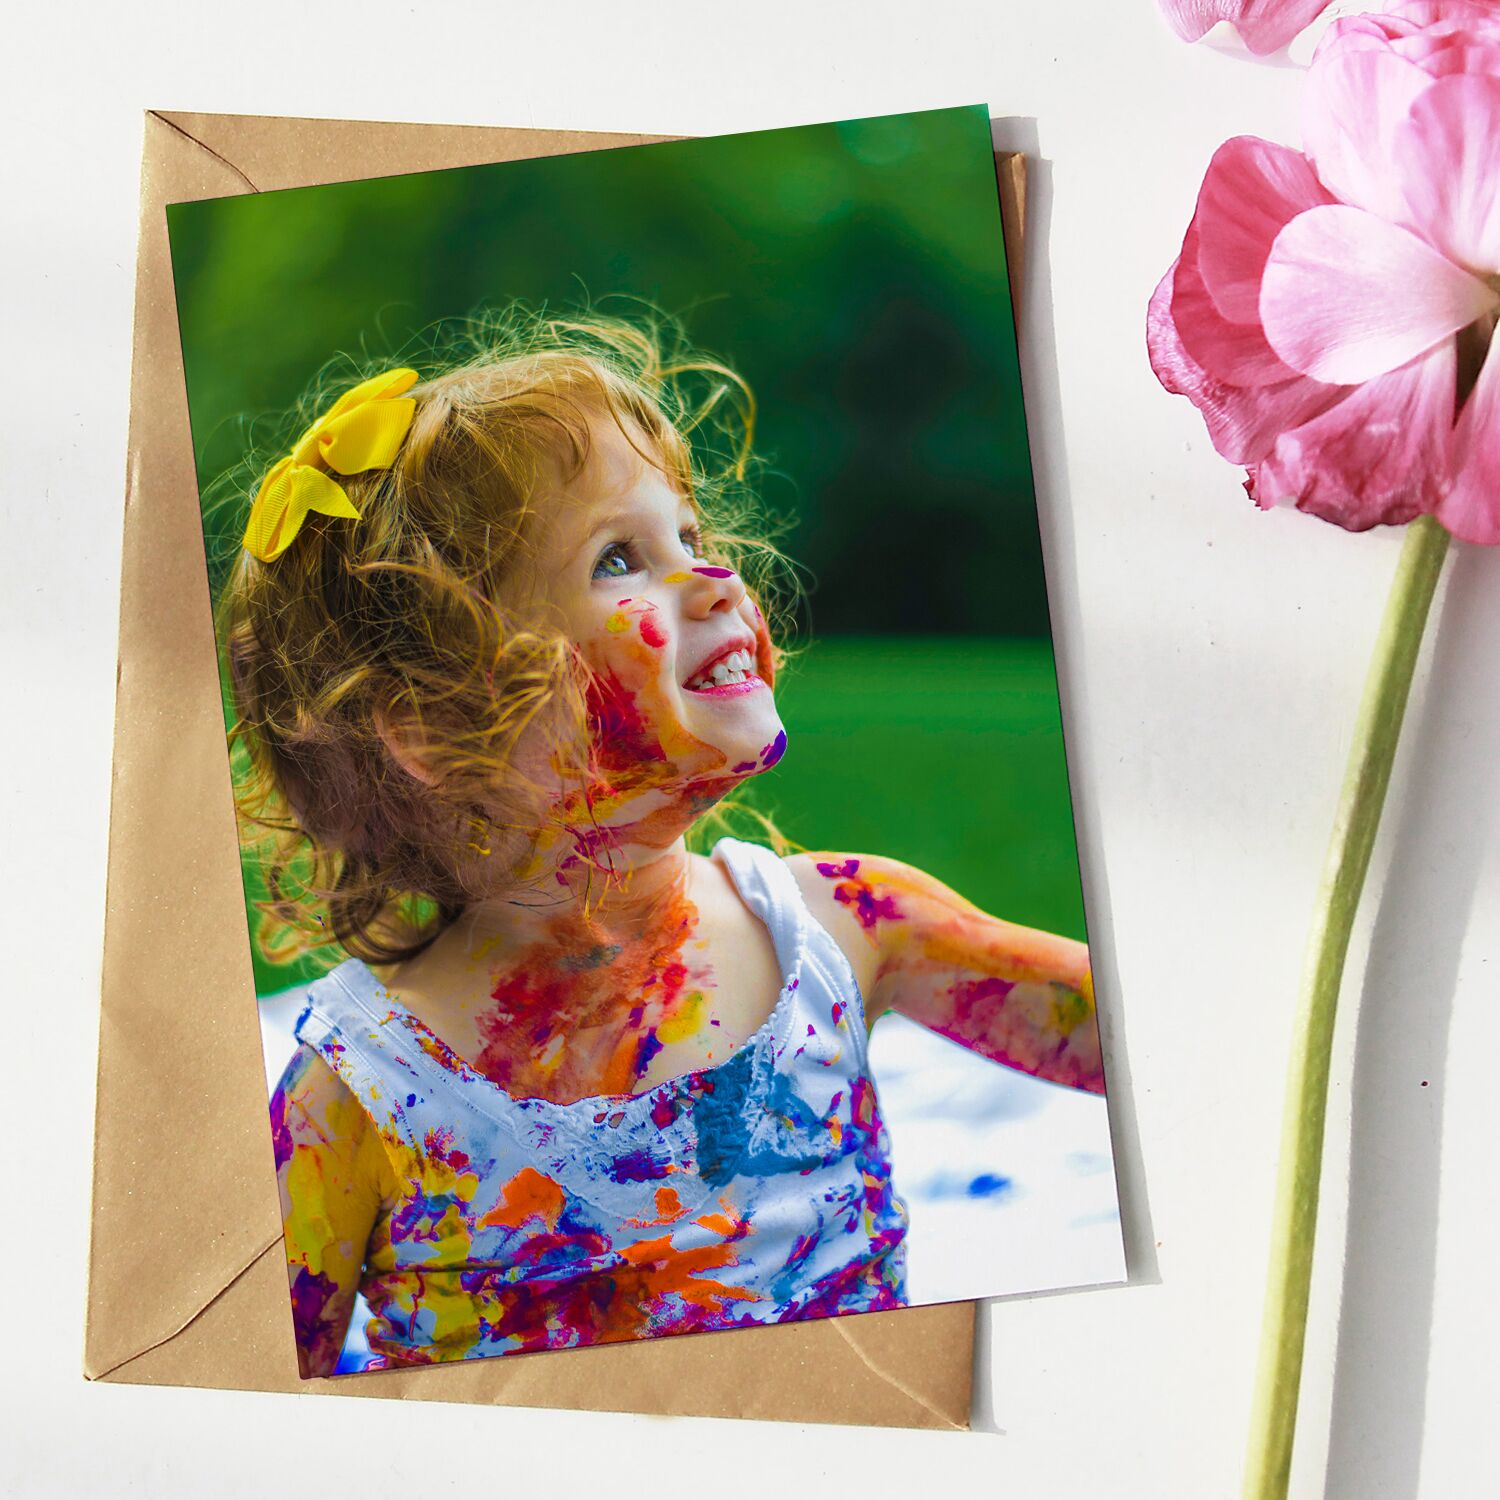 100sheets Glossy  Photo Paper 4R 6inch 4x6 Waterproof For Inkjet Printer Paper studio Photographer Photographic Color Coated 3